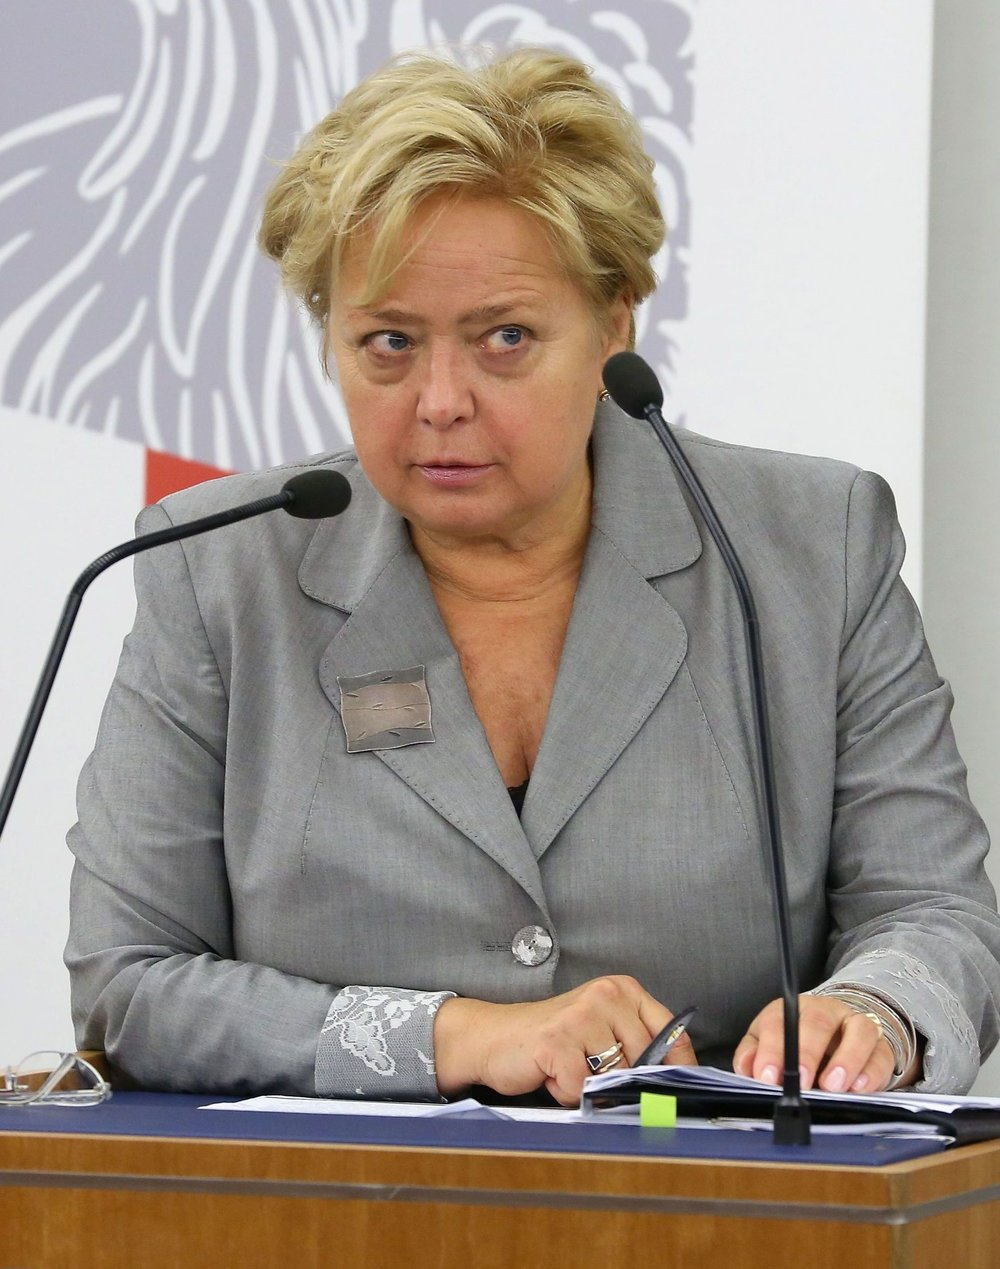 Polish Supreme Court Chief Malgorzata Gersdorf pictured during a 2014 sitting of the Polish Senate. WIkimedia Commons.